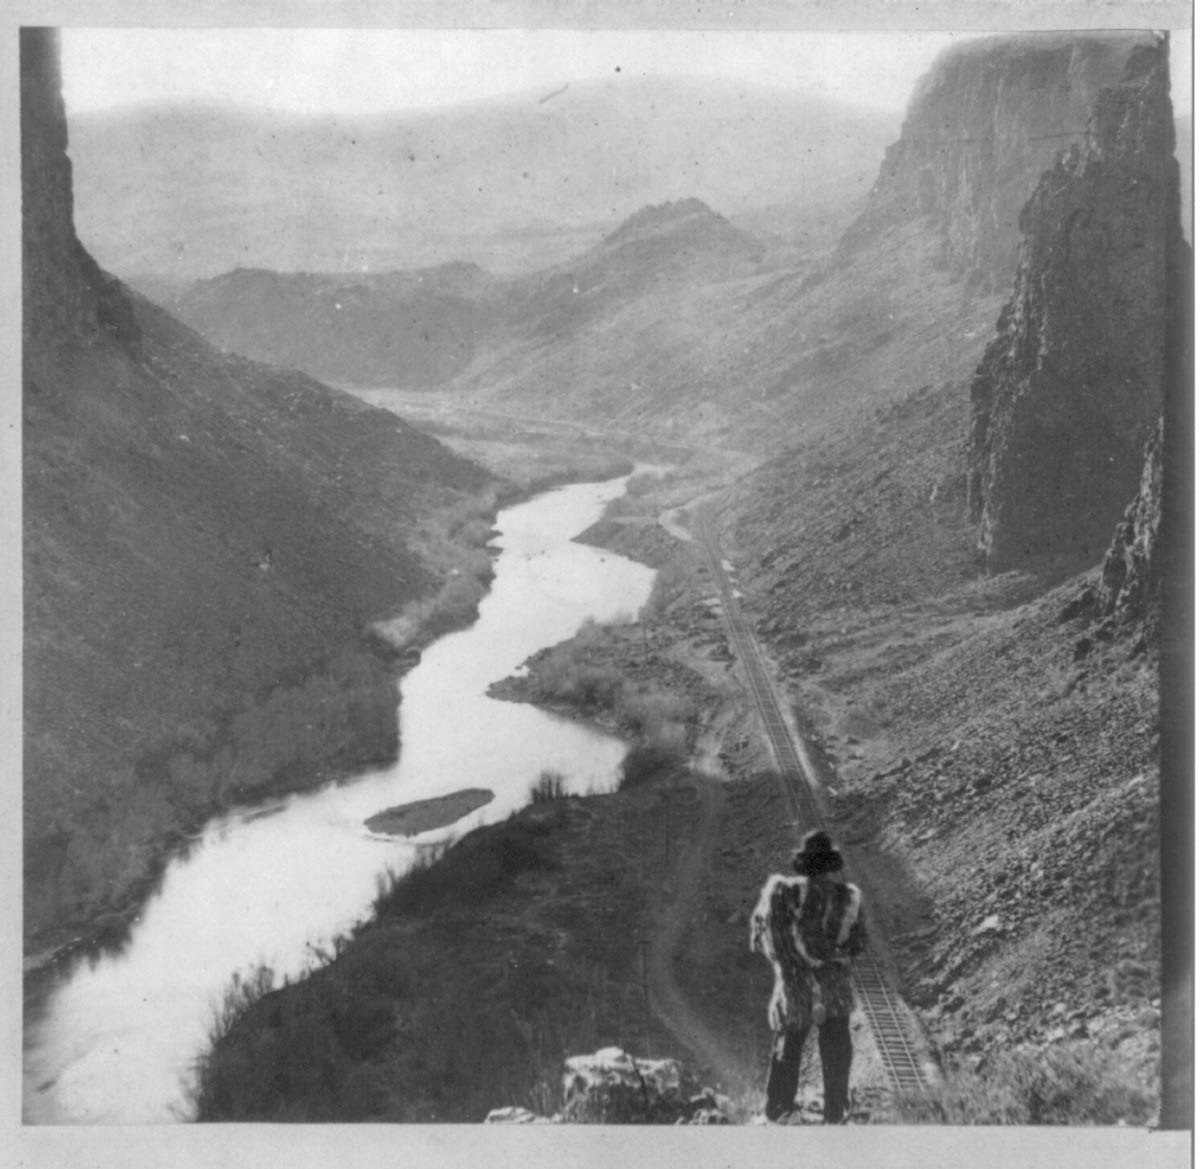 A Native American looks out over a river valley.